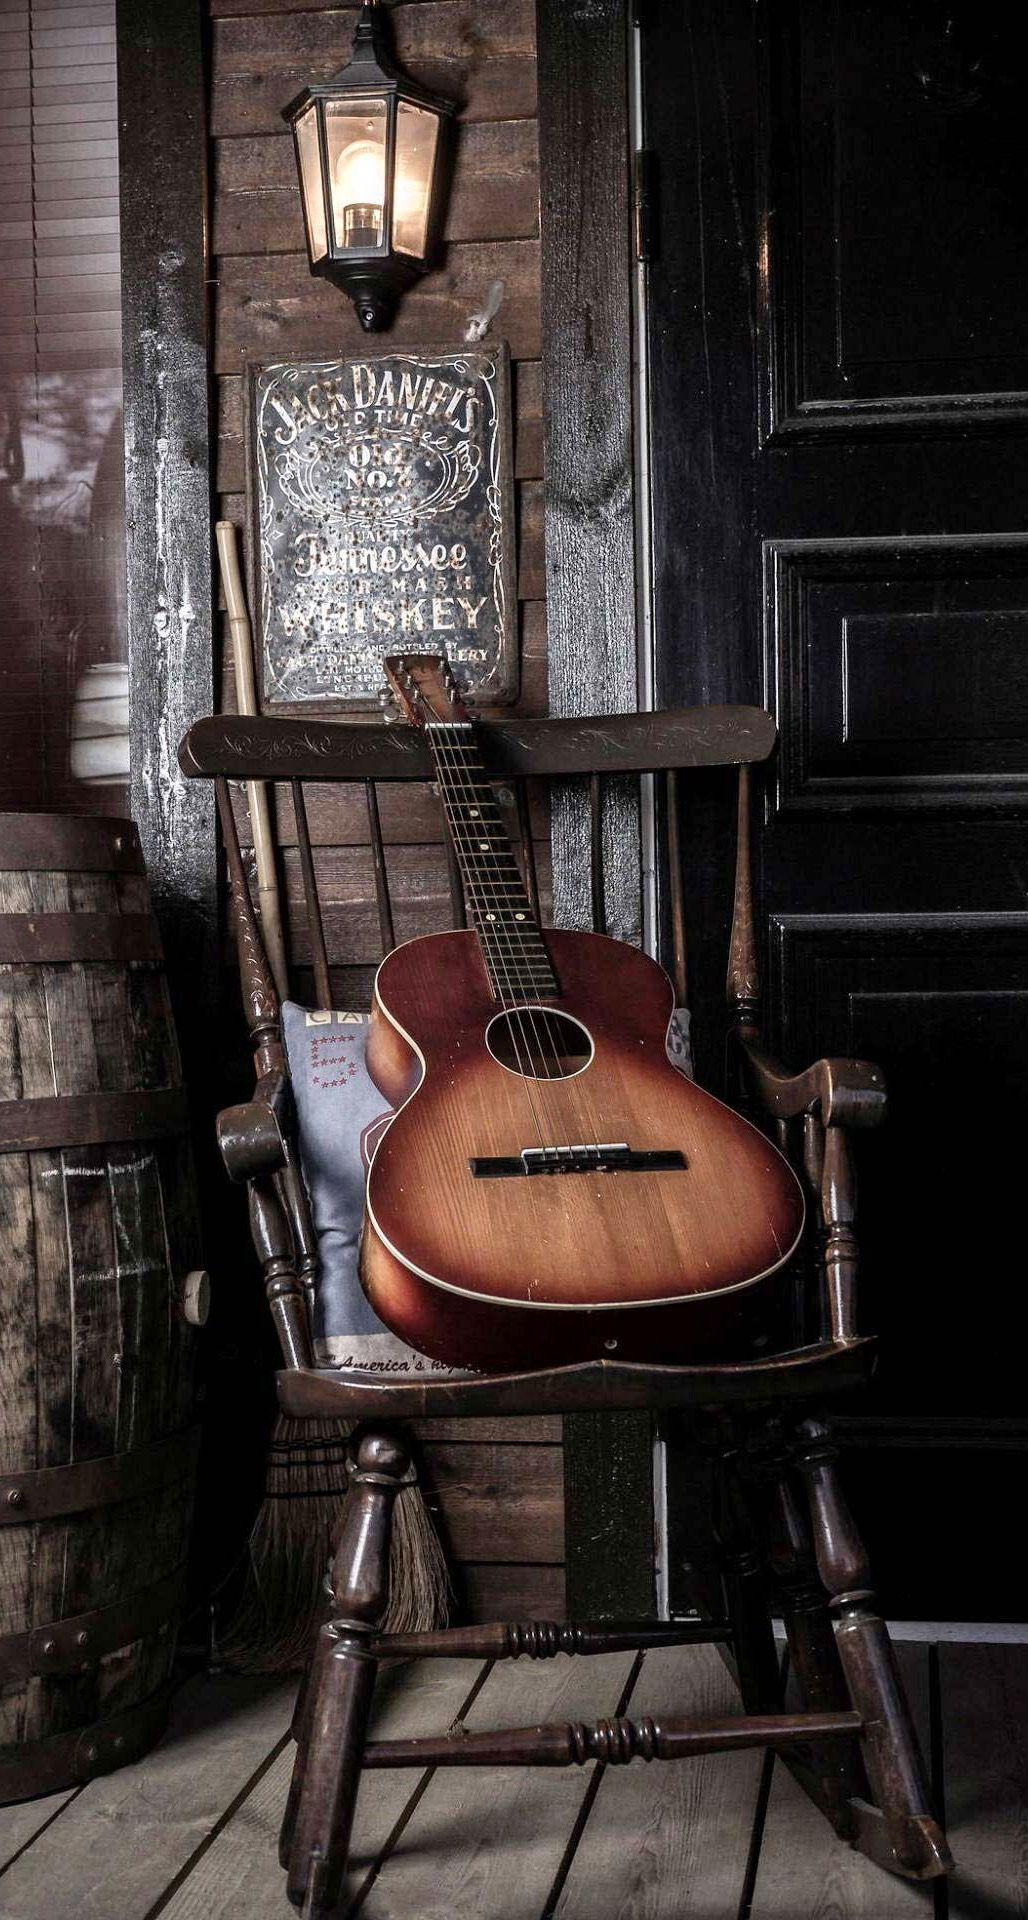 0x0 Old Guitar On Chair Android Wallpaper free download